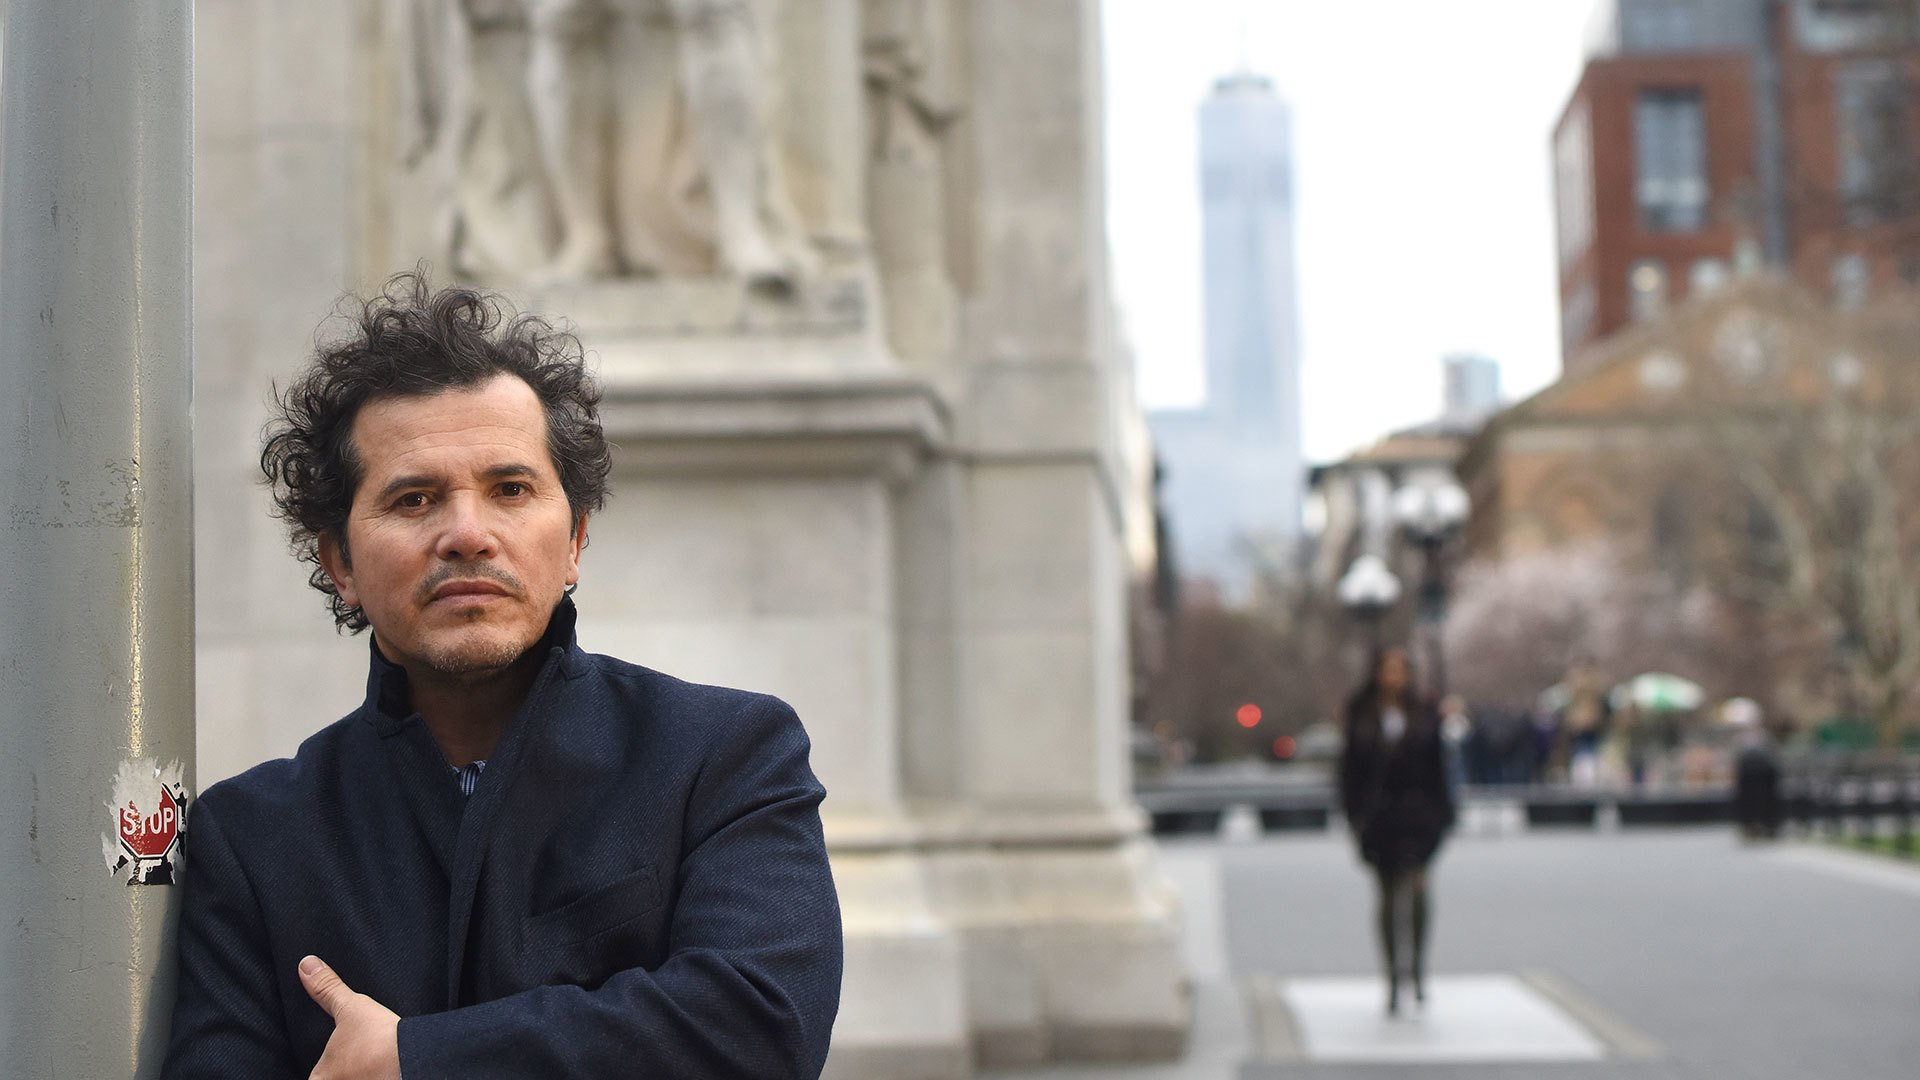 John Leguizamo on the sidewalk